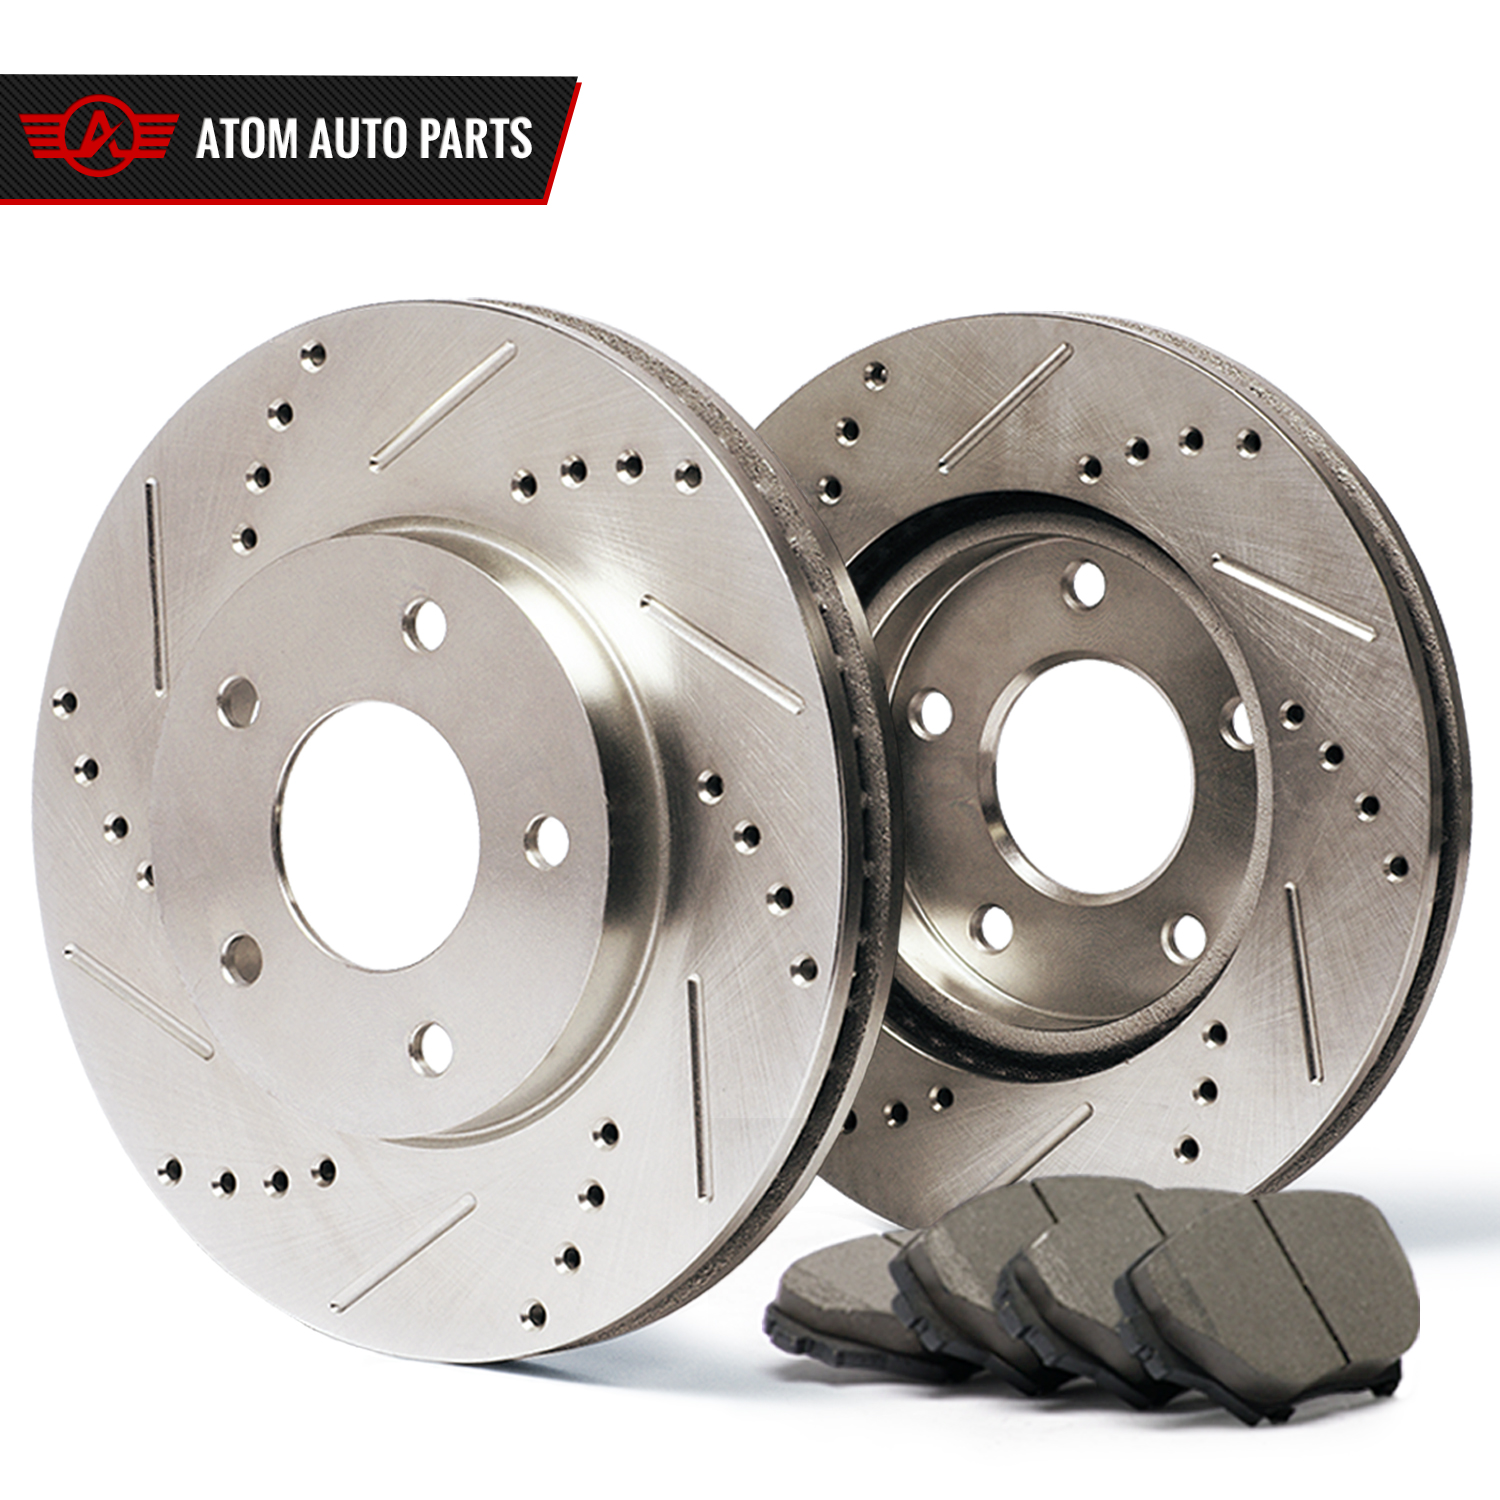 2010-2011-Mercedes-Benz-GLK350-4Matic-Slotted-Drilled-Rotors-Ceramic-Pads-R